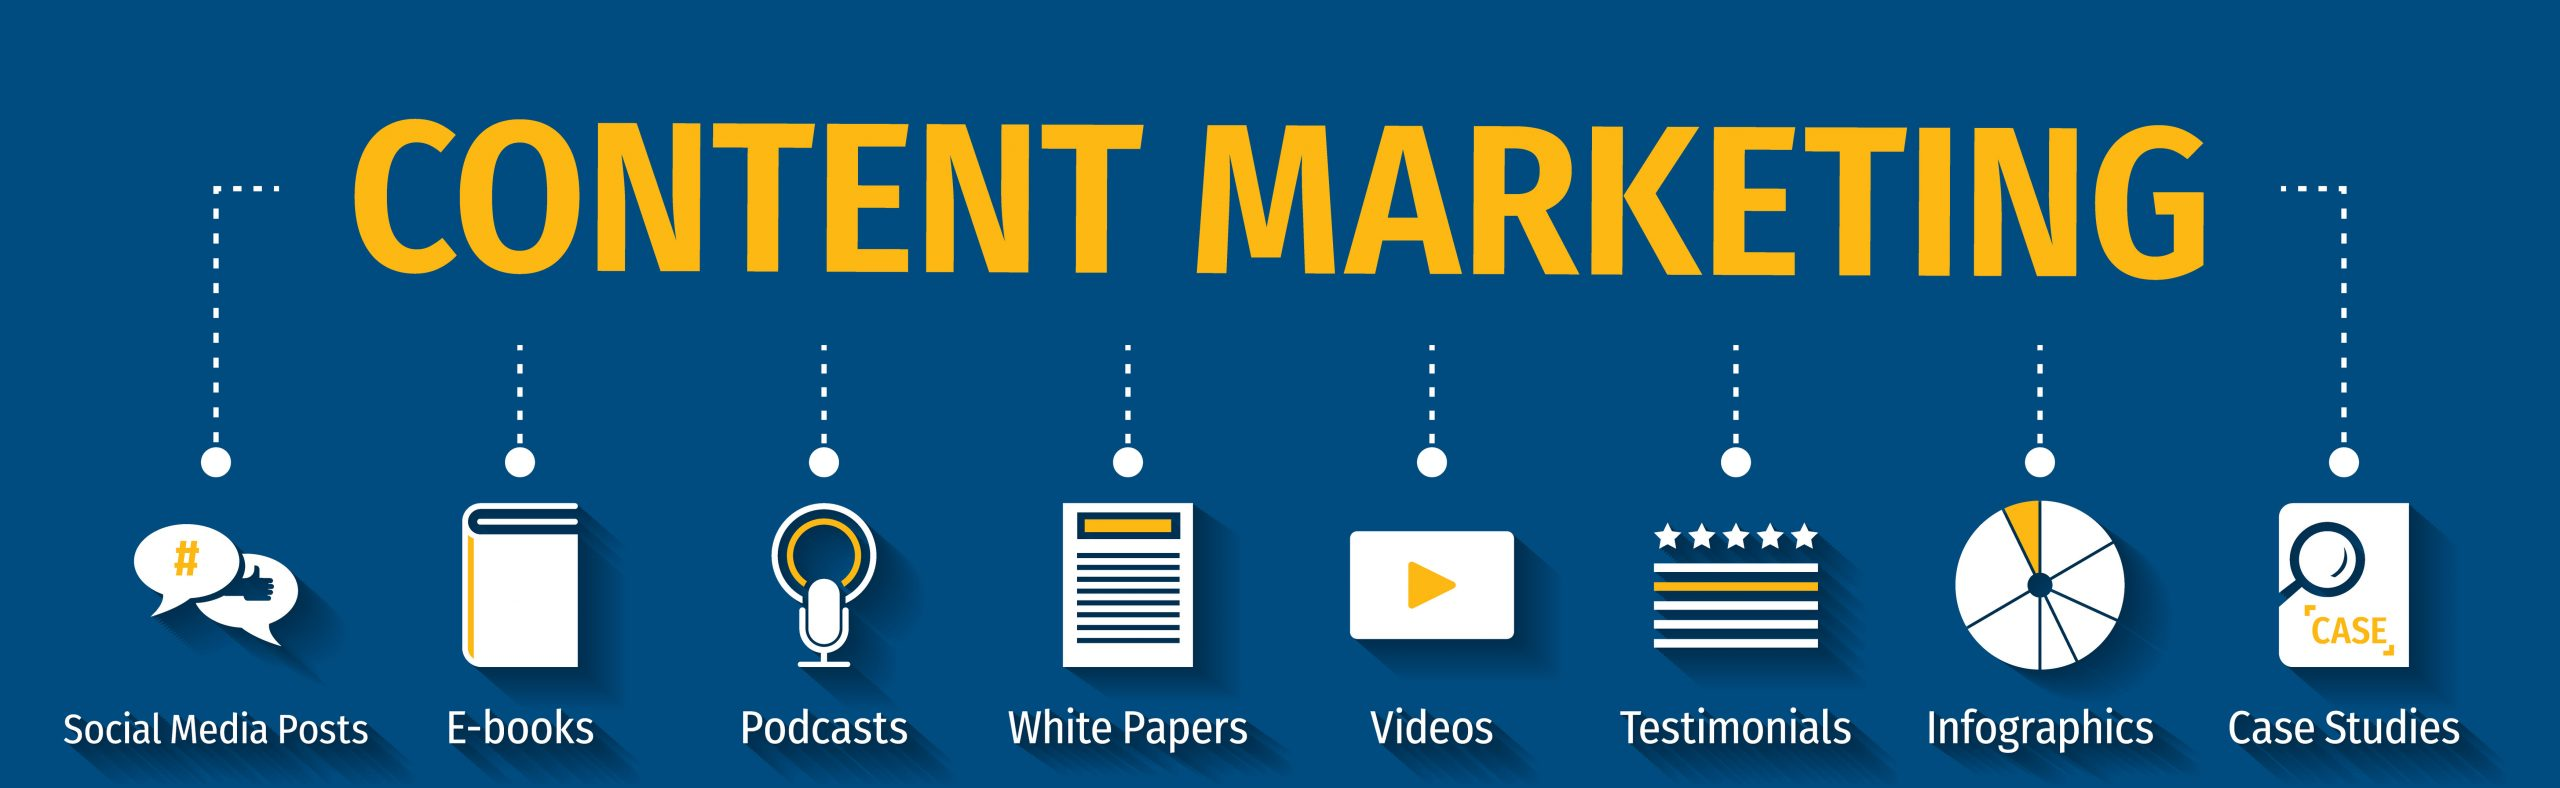 Content Marketing Flat Vector Icons. Content Marketing Vector Background with Icons.